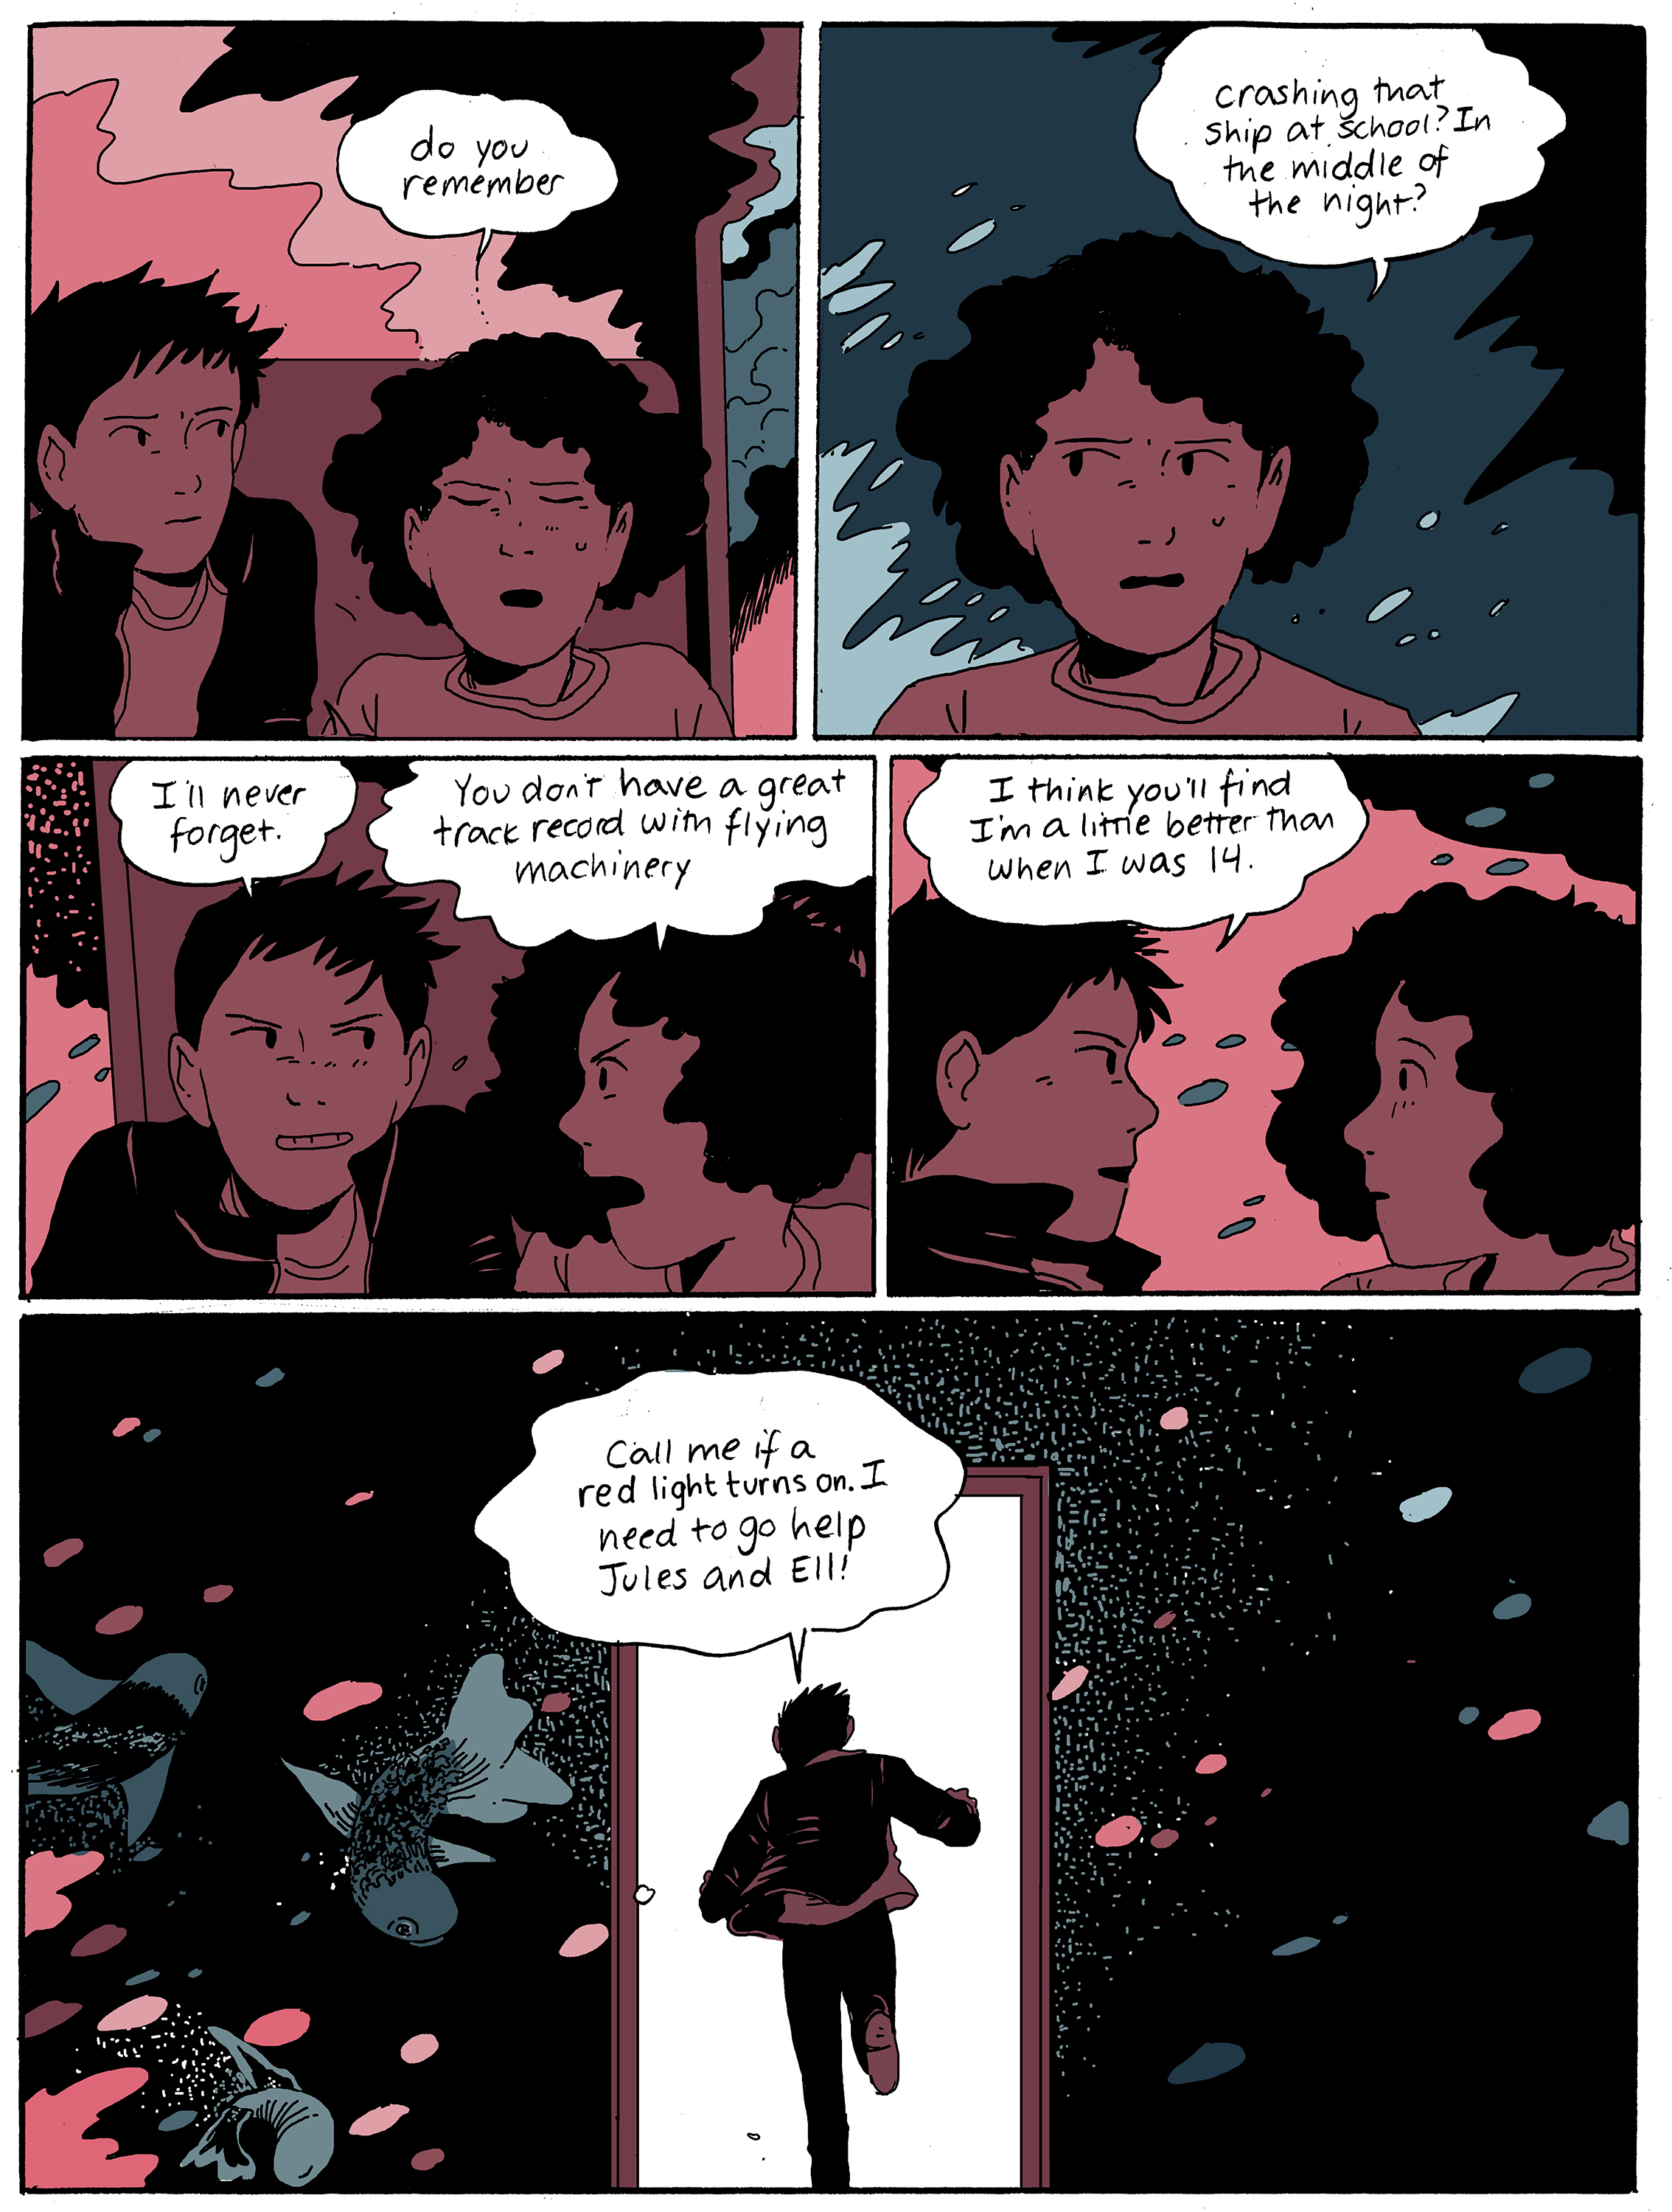 chapter20_page17.jpg